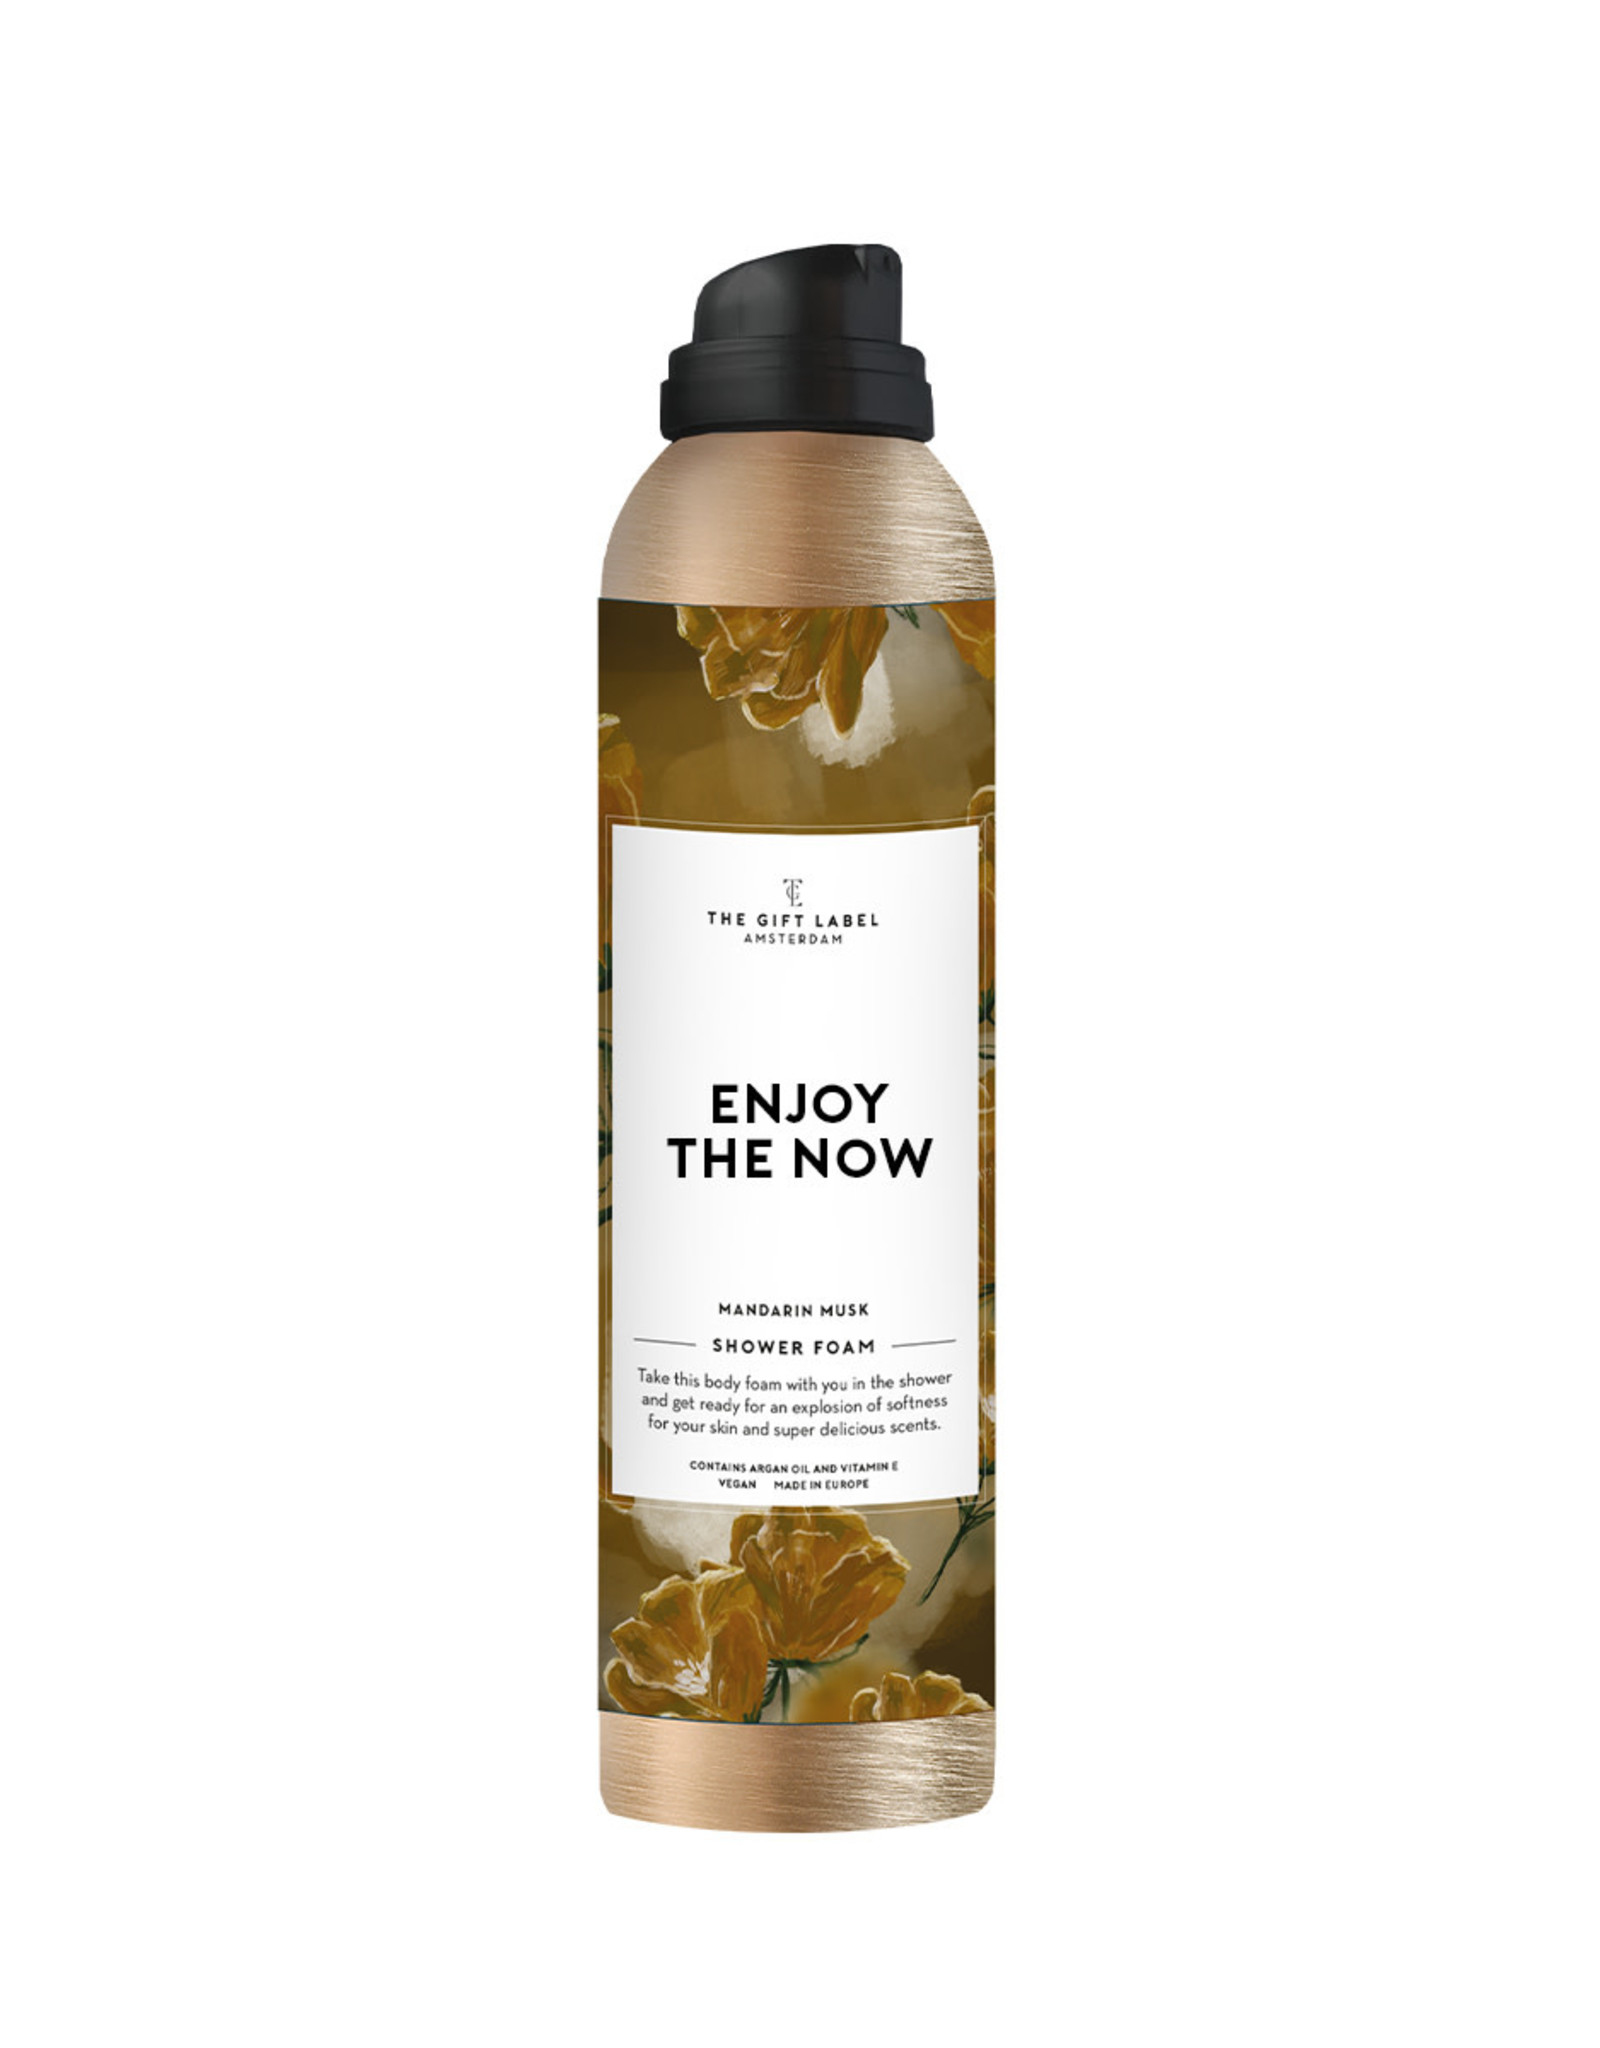 The Gift Label The Gift Label Shower Foam Enjoy the now